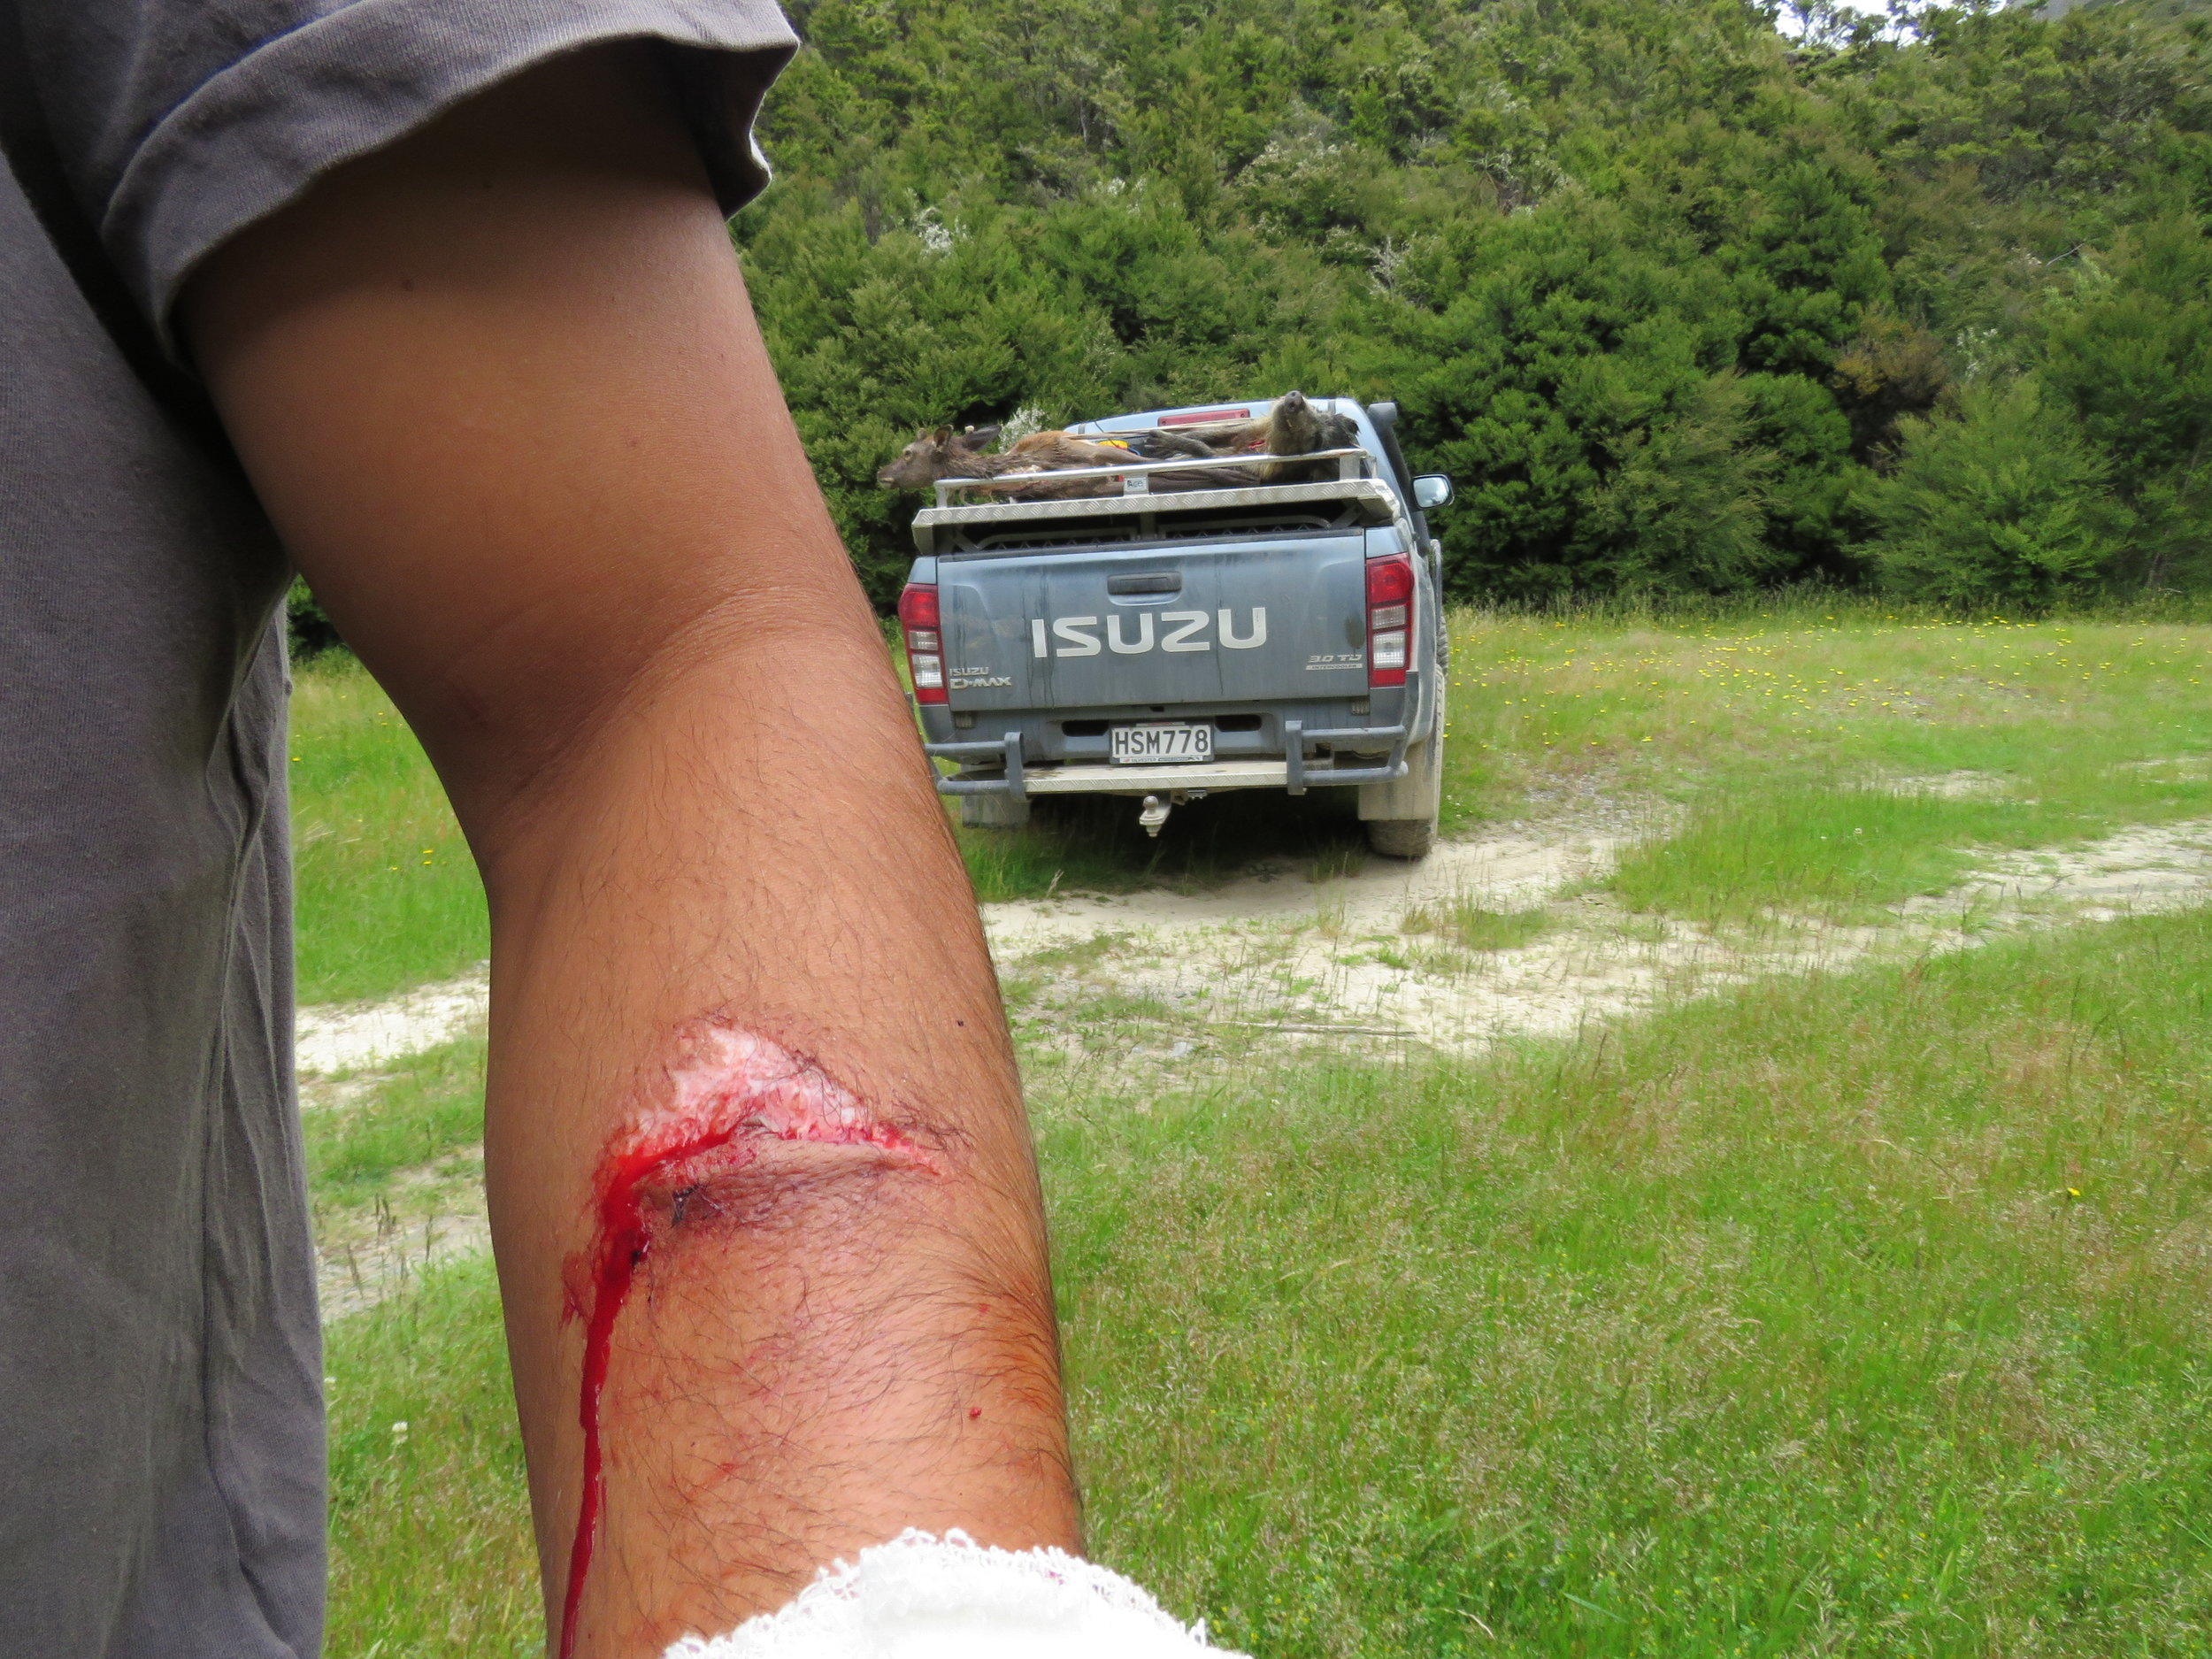 An Argentinian visitor on his first pig hunt and ends up with 8 stitches.